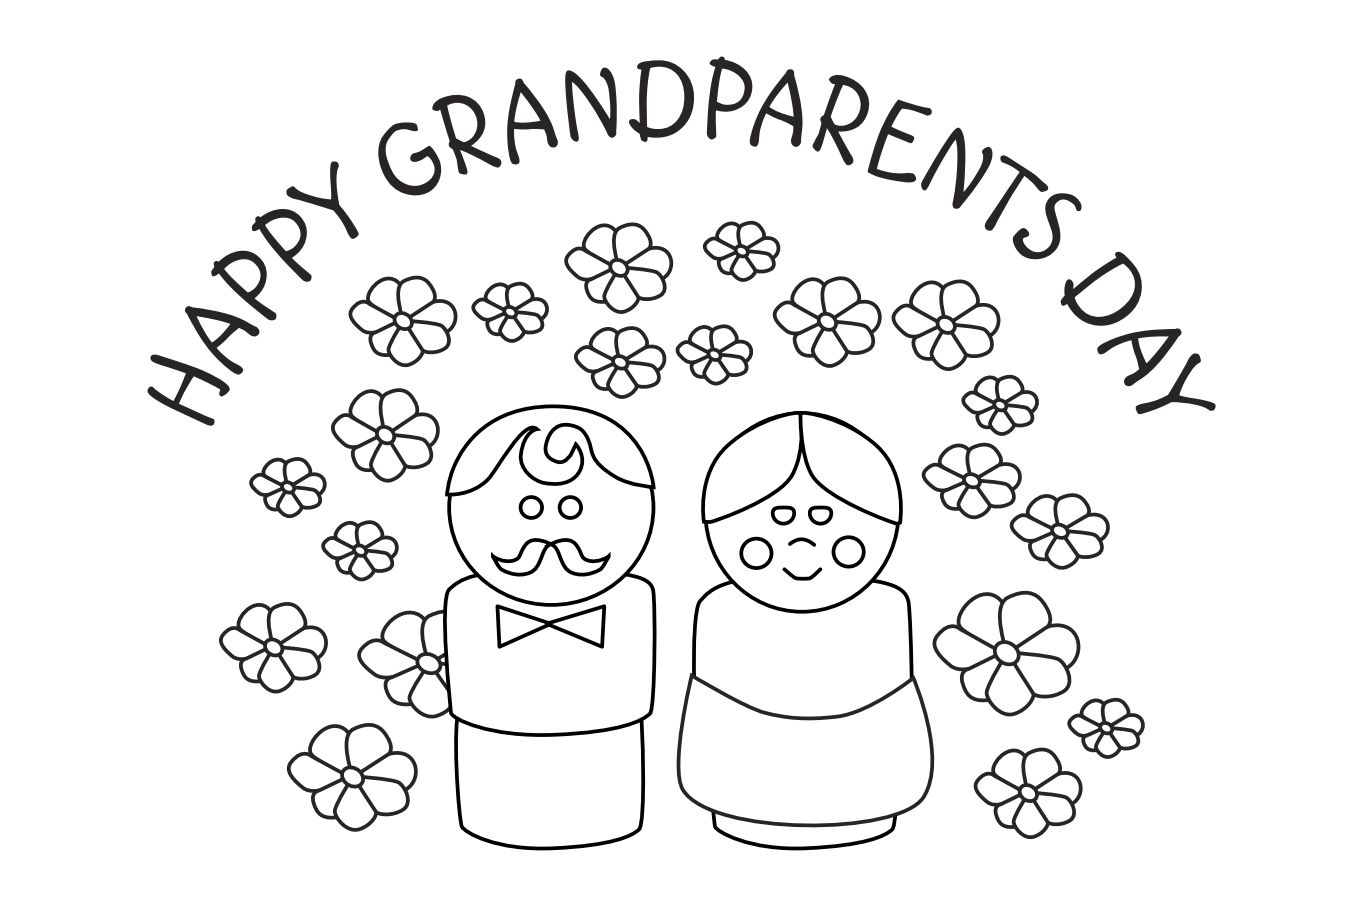 free grandparents day cards